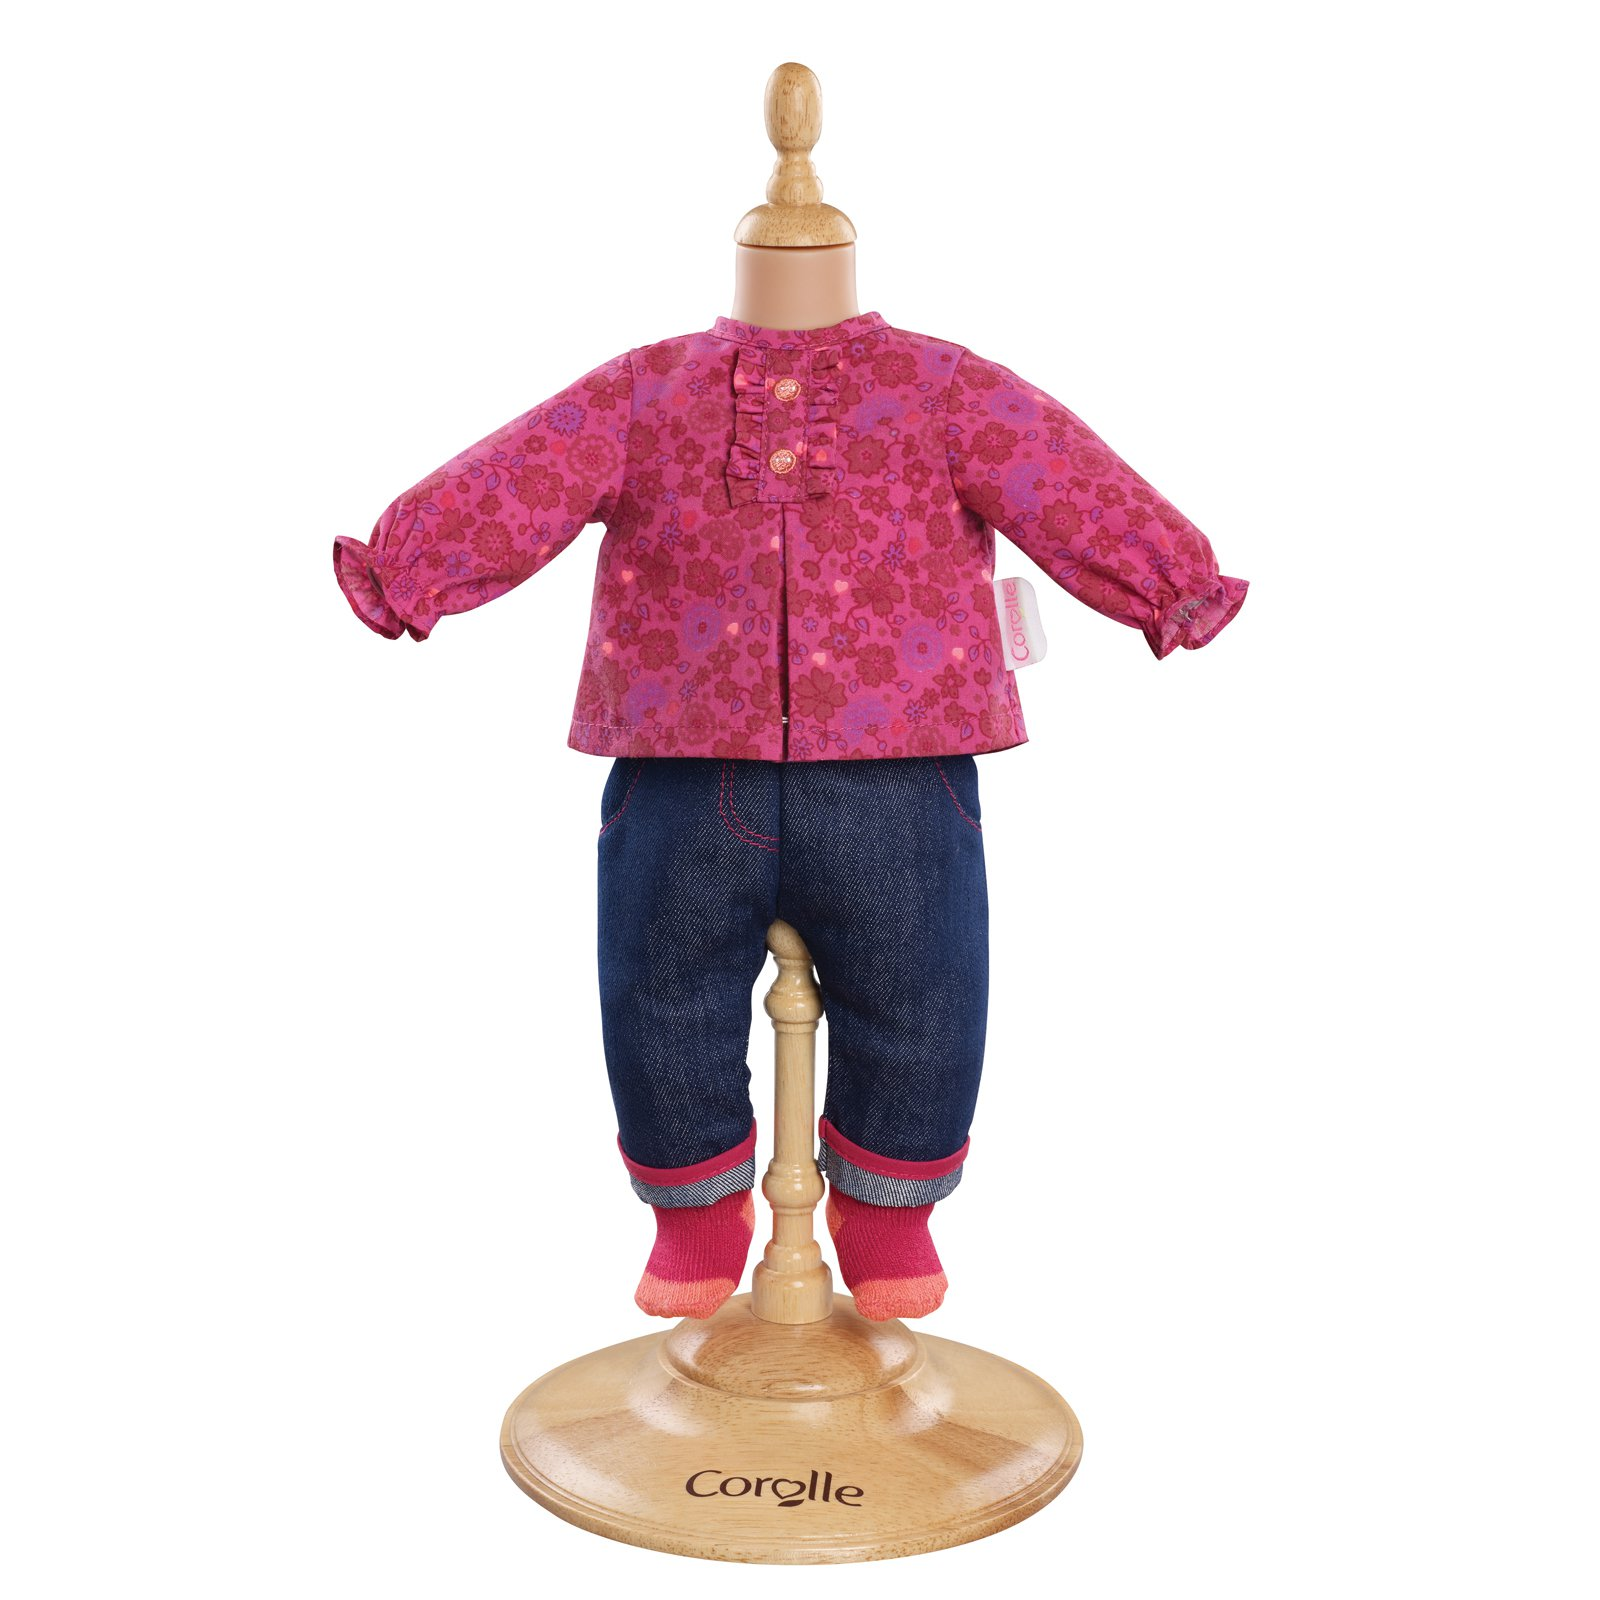 Corolle Mon Classiques Bebe 14 in. Grenadine Blouse & Denim Doll Ensemble by Corolle